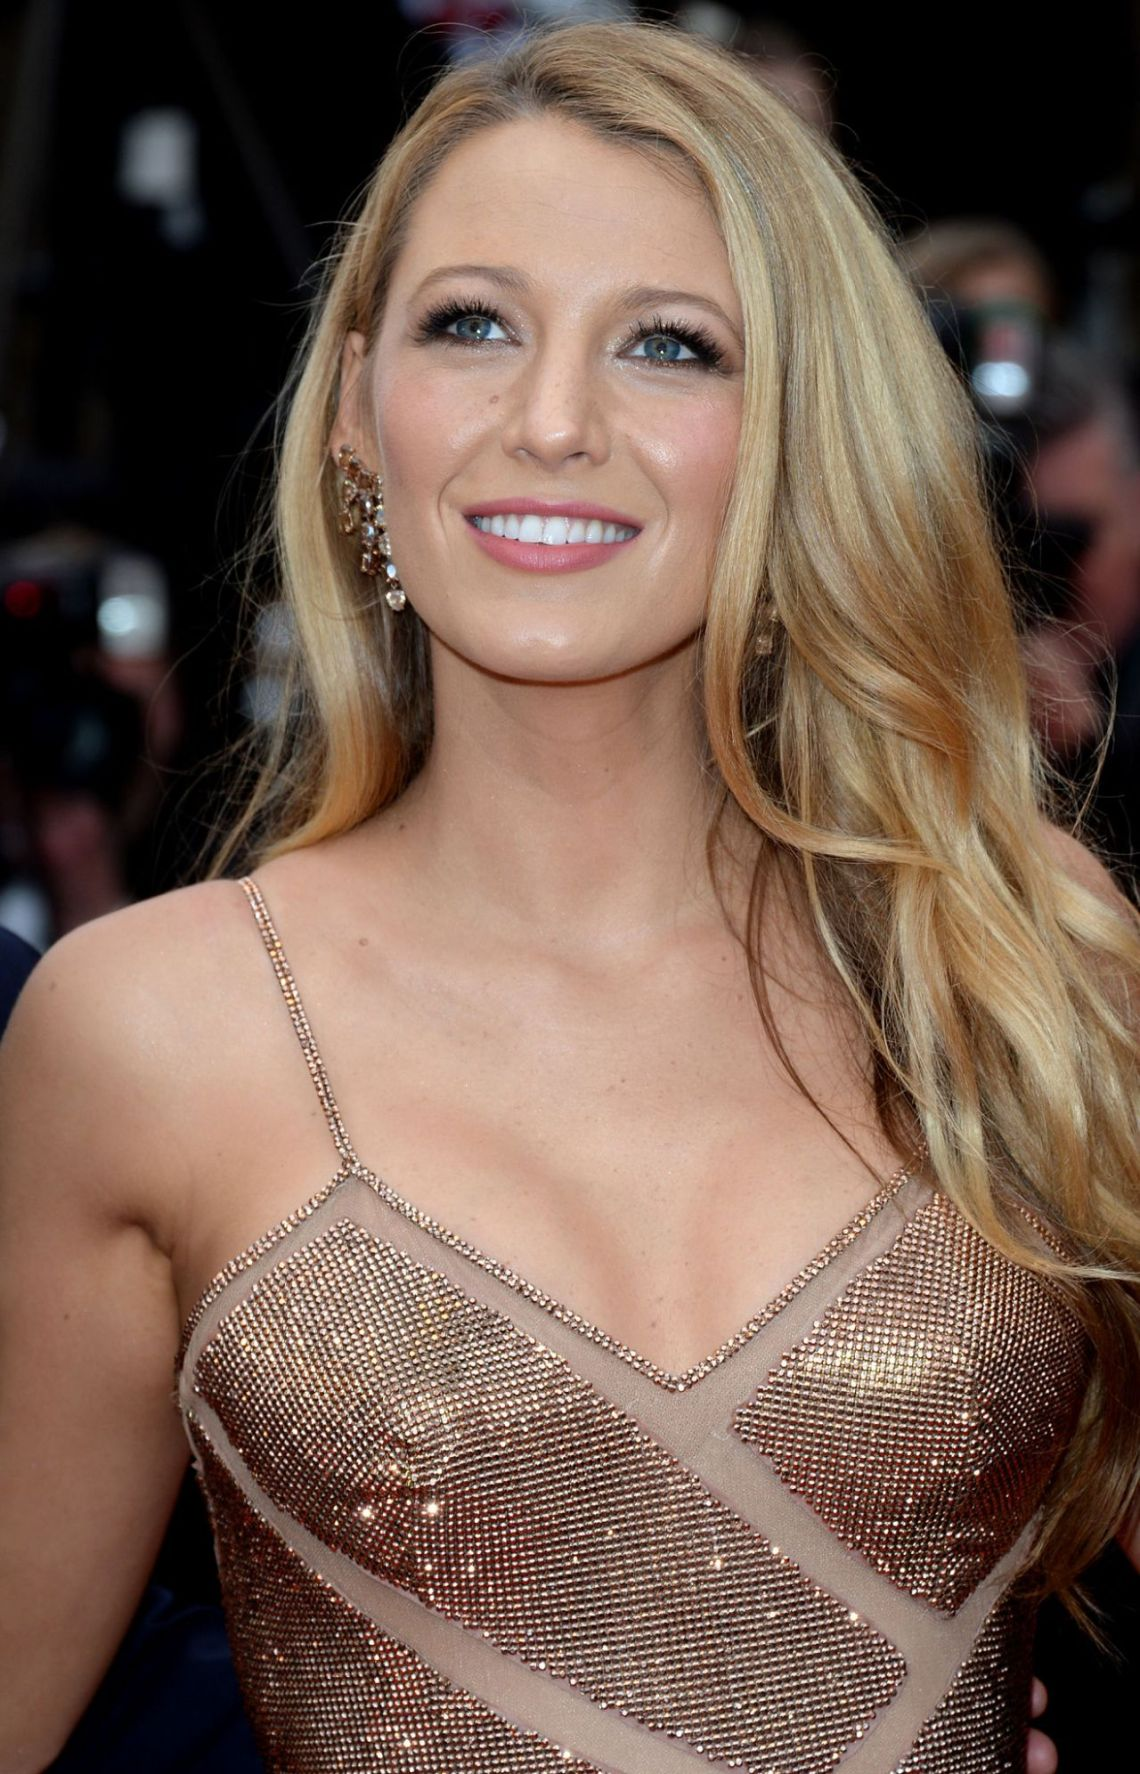 blake-lively-opening-ceremony-and-the-café-society-premiere-2016-cannes-film-festival-1